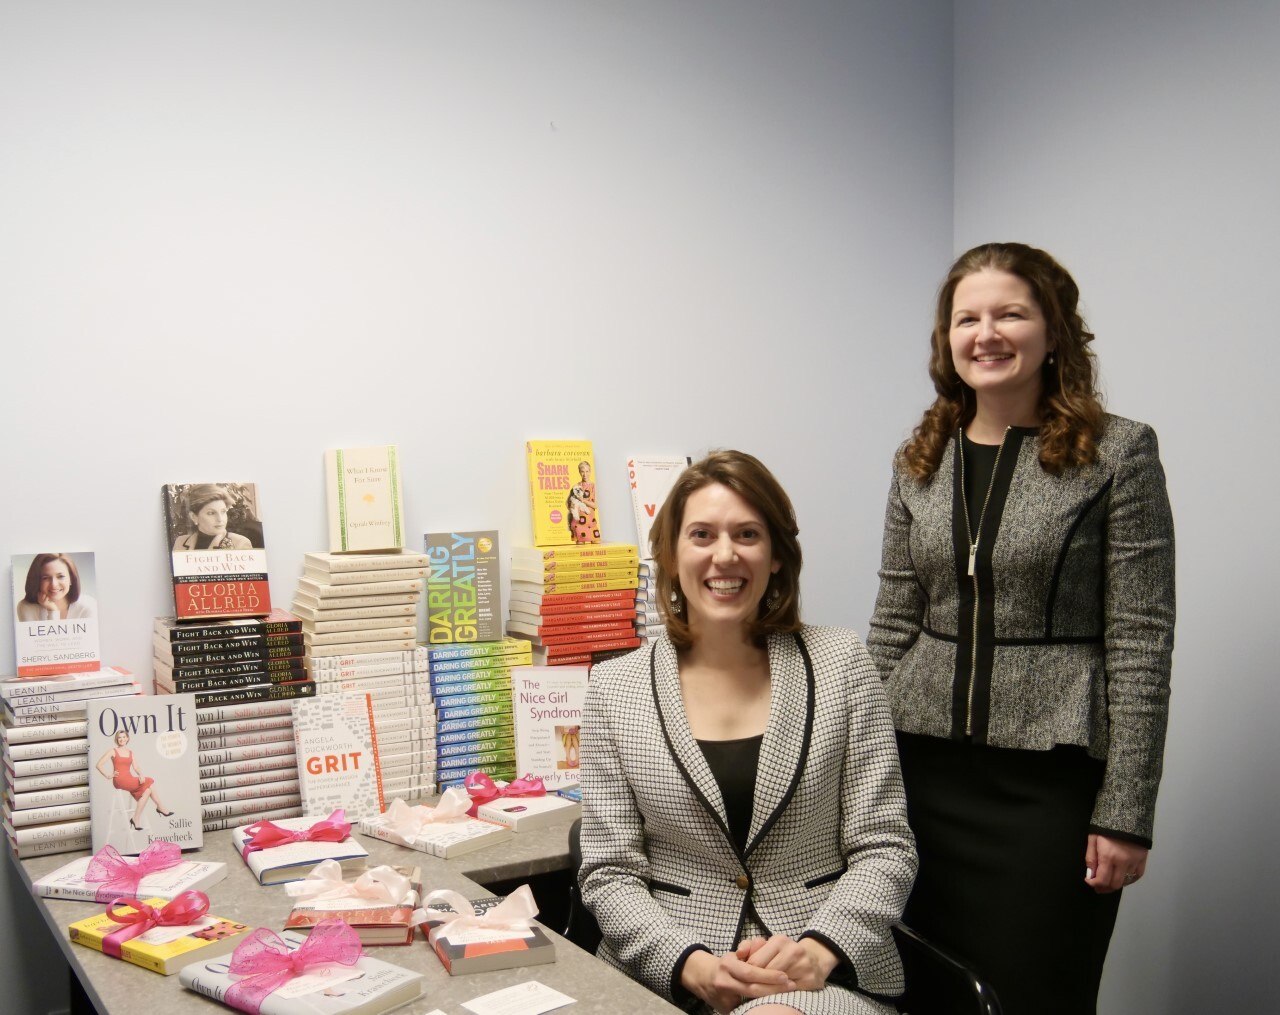 Clare and Megan pink ribbon books.jpg